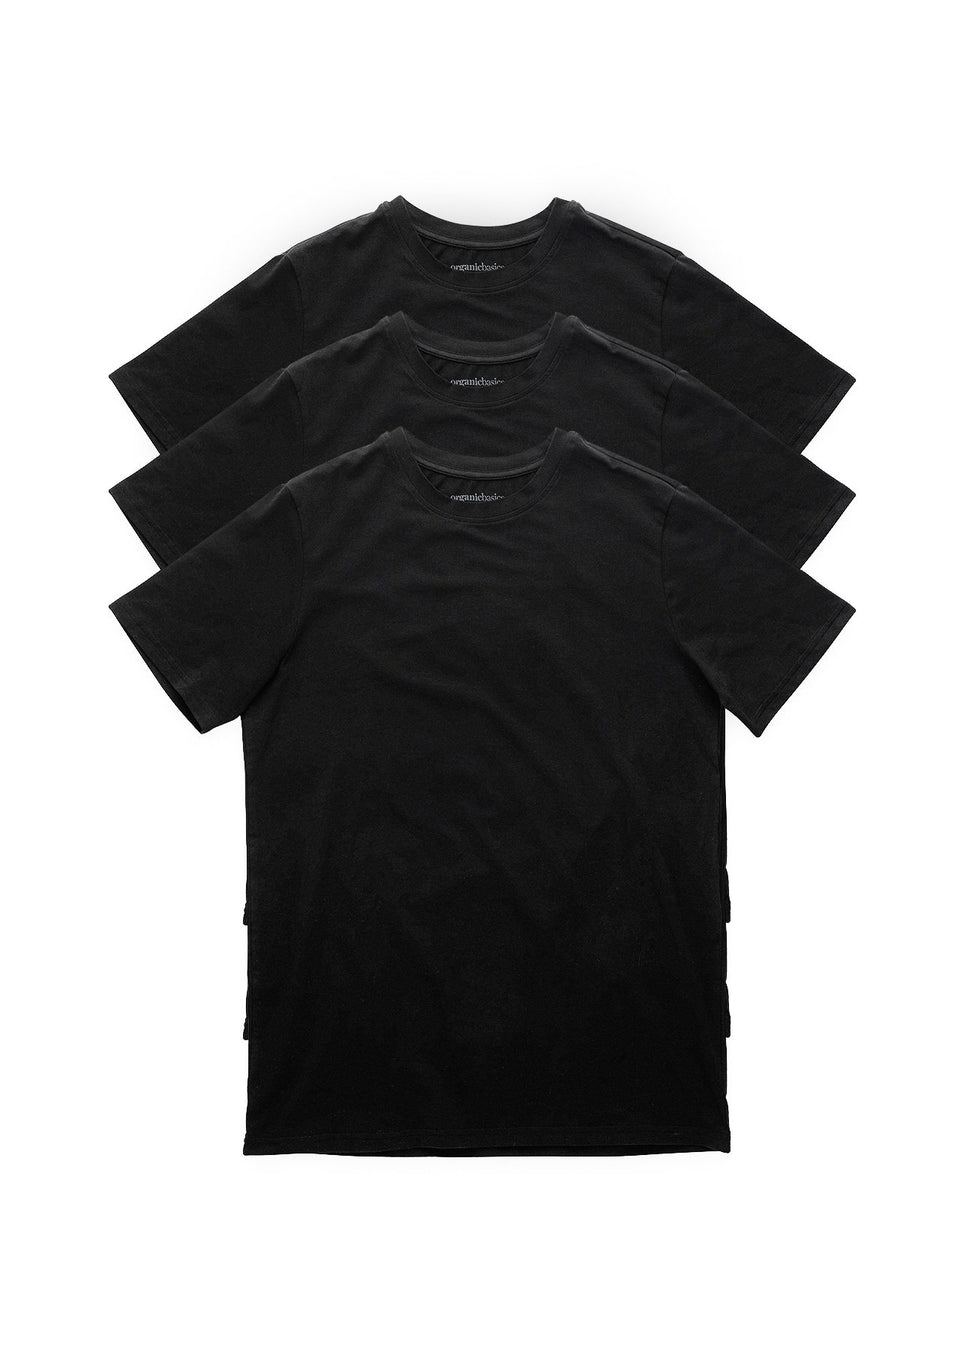 Organic Basics Men's Tee 3-pack